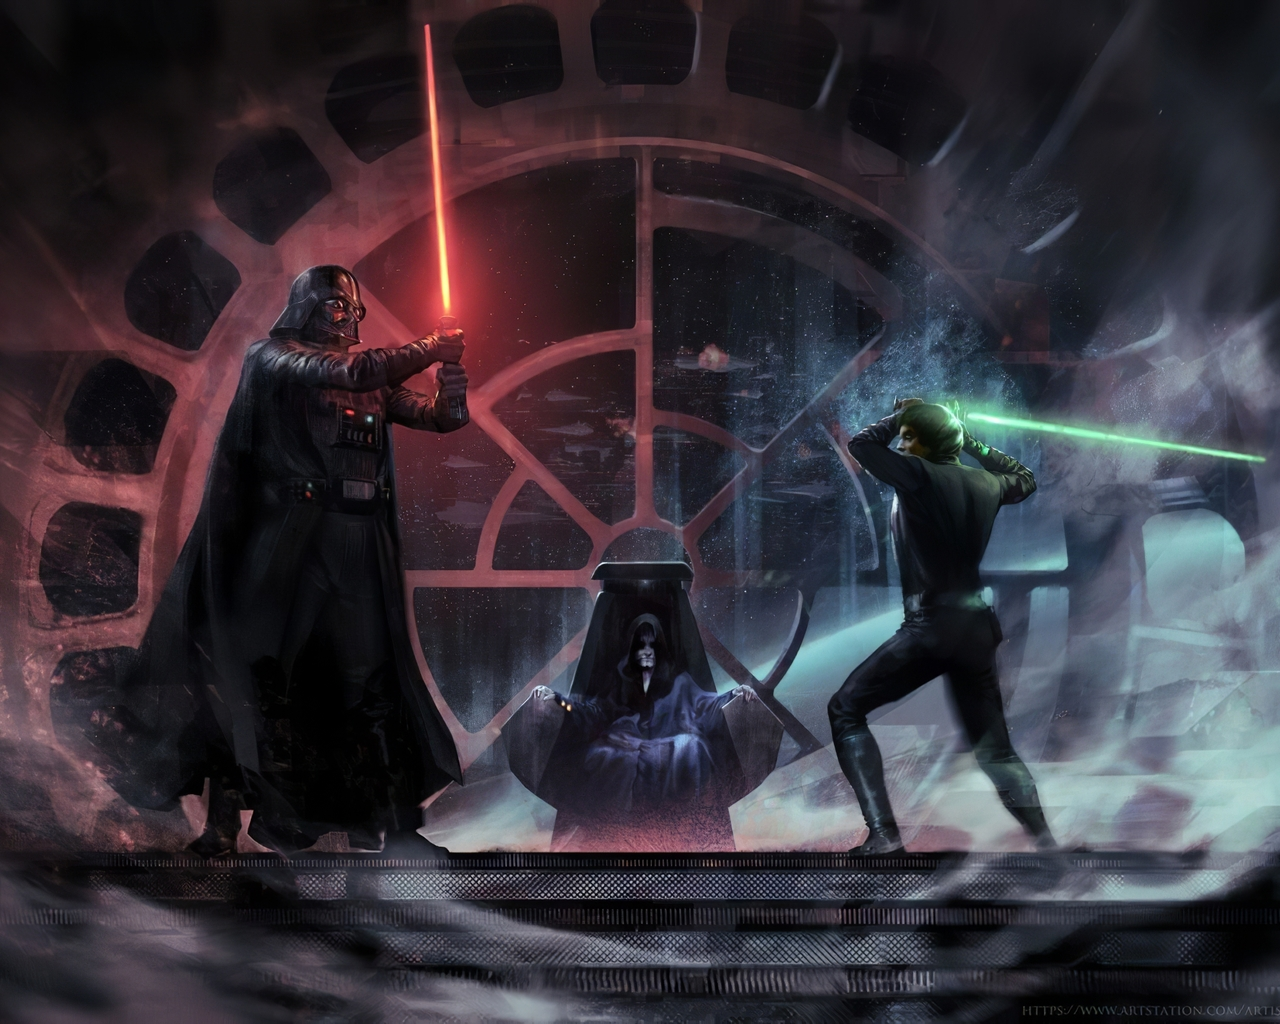 darth-vader-vs-luke-skywalker-3e.jpg